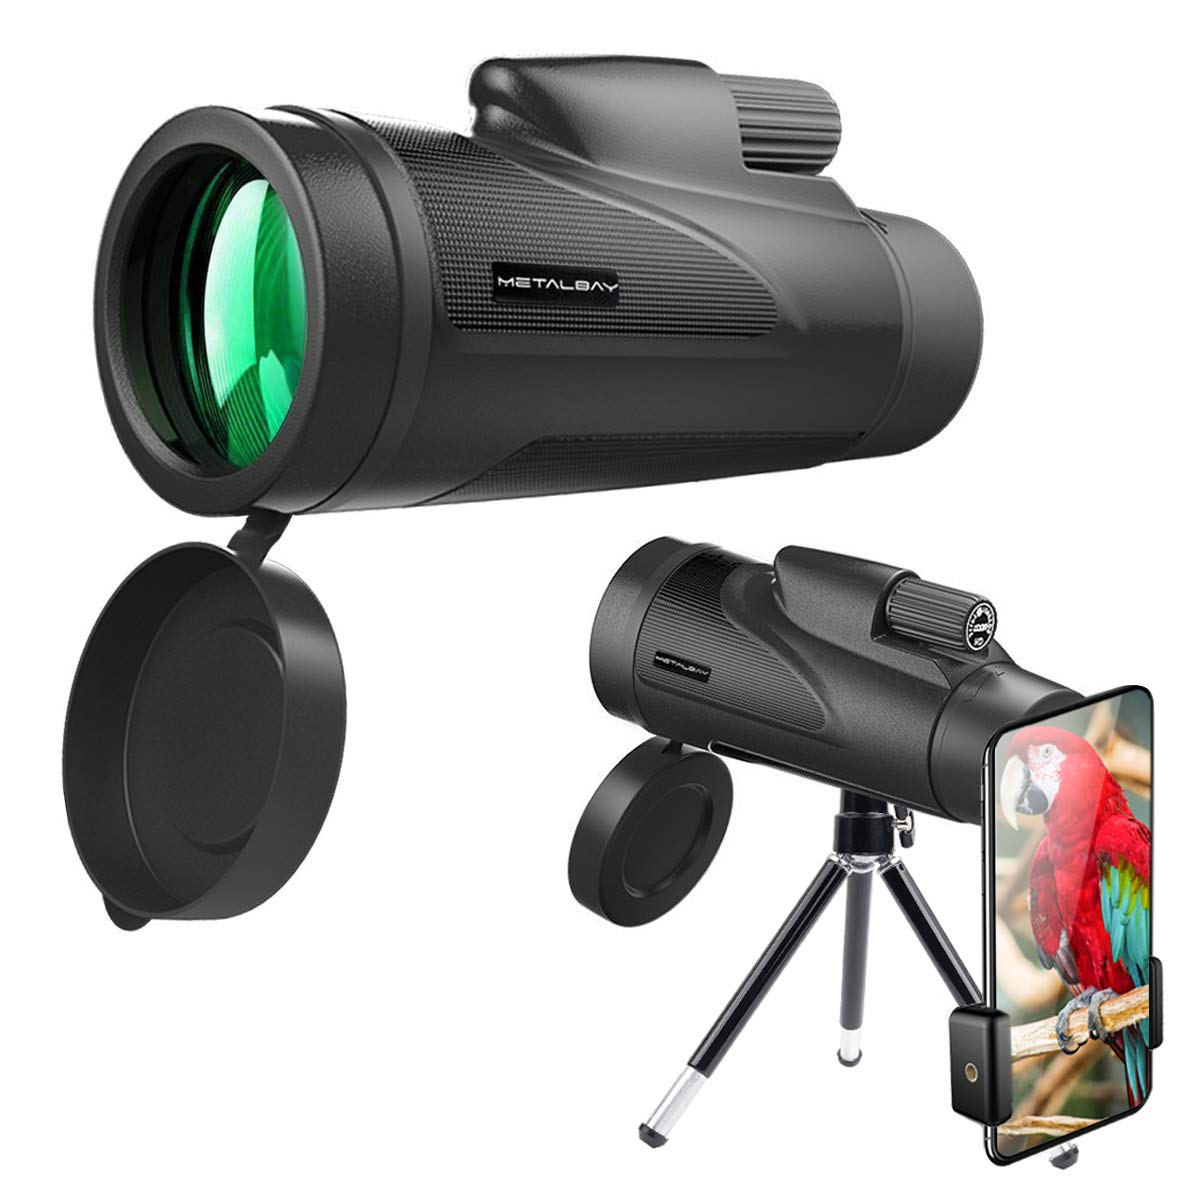 Metalbay High Power Monocular Telescope 12×50 Waterproof Monocular Scope with Tripod Smartphone Holder, HD Wide Angle BAK7 Prism Scope, Low Light Night Vision for Bird Watching Hunting Hiking Outdoor